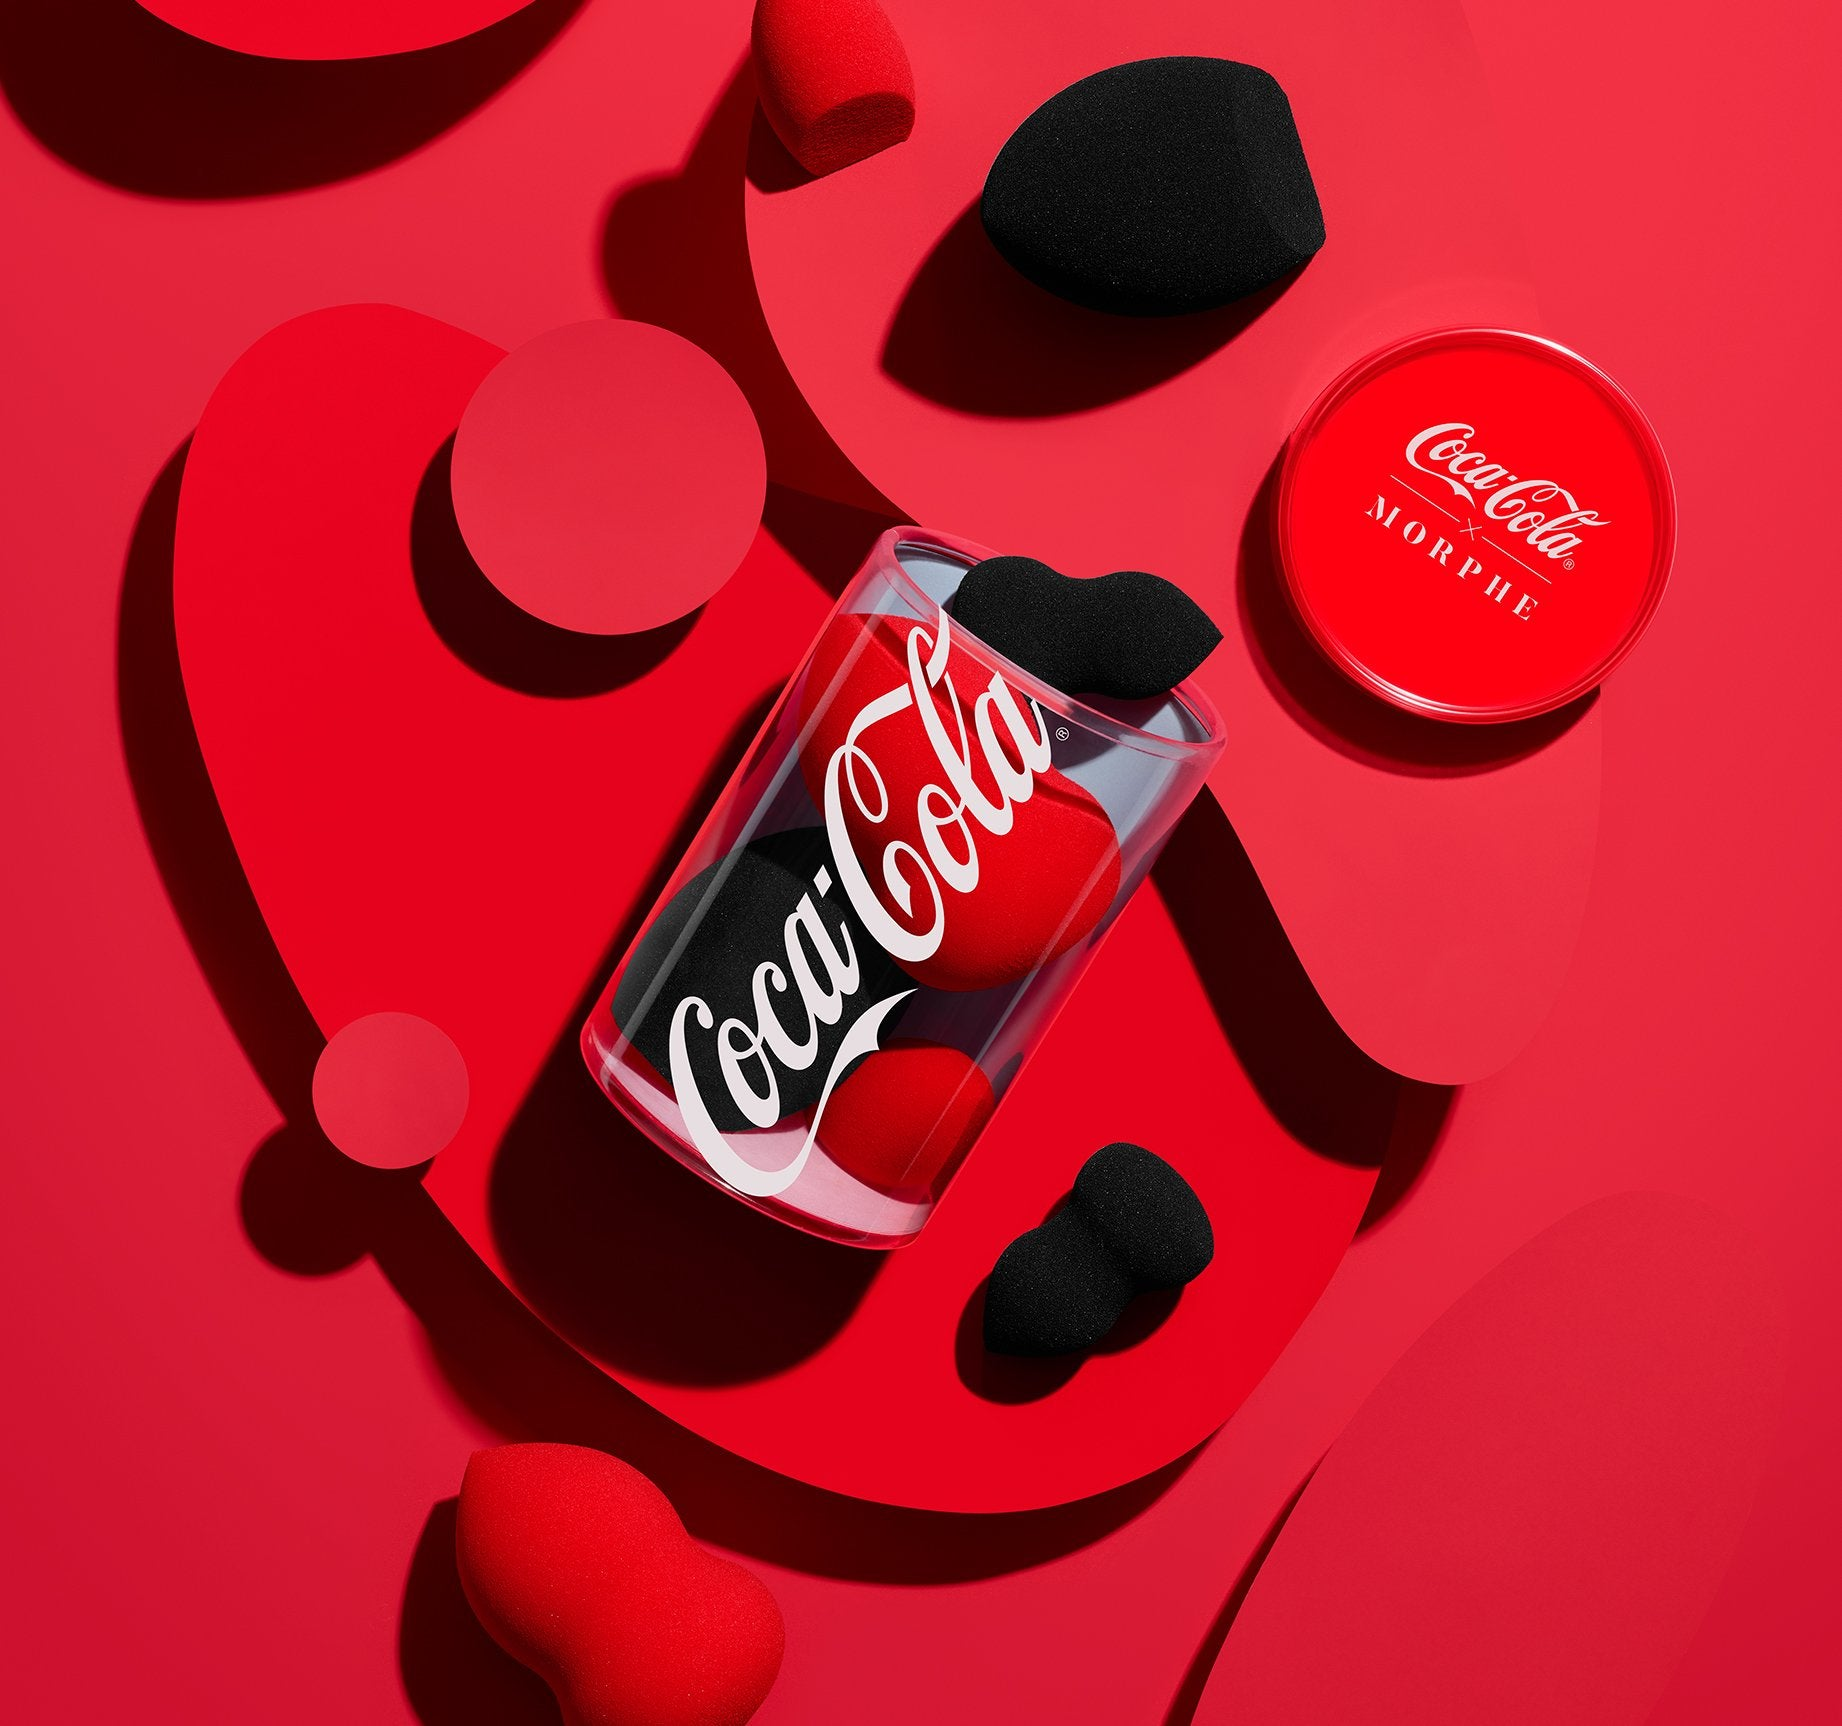 COCA-COLA X MORPHE THE QUENCH PACK BEAUTY SPONGE COLLECTION, view larger image